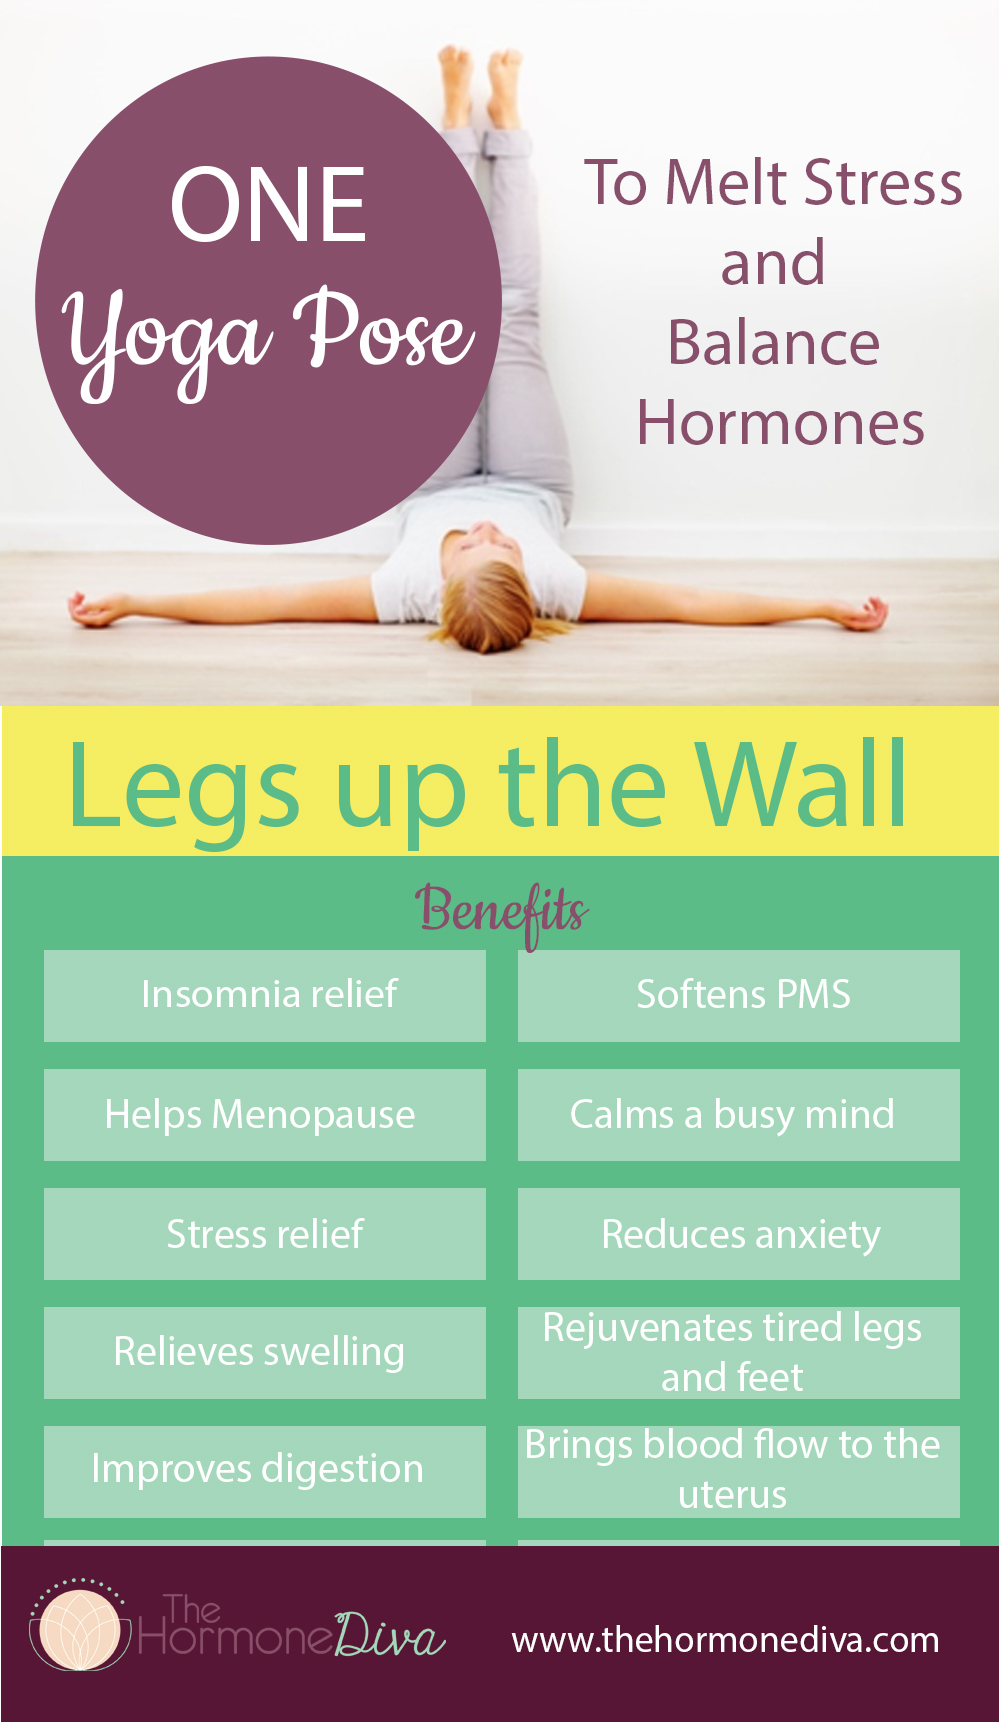 One Yoga Pose to Melt Stress and Balance Hormones | Infographic | The Hormone Diva